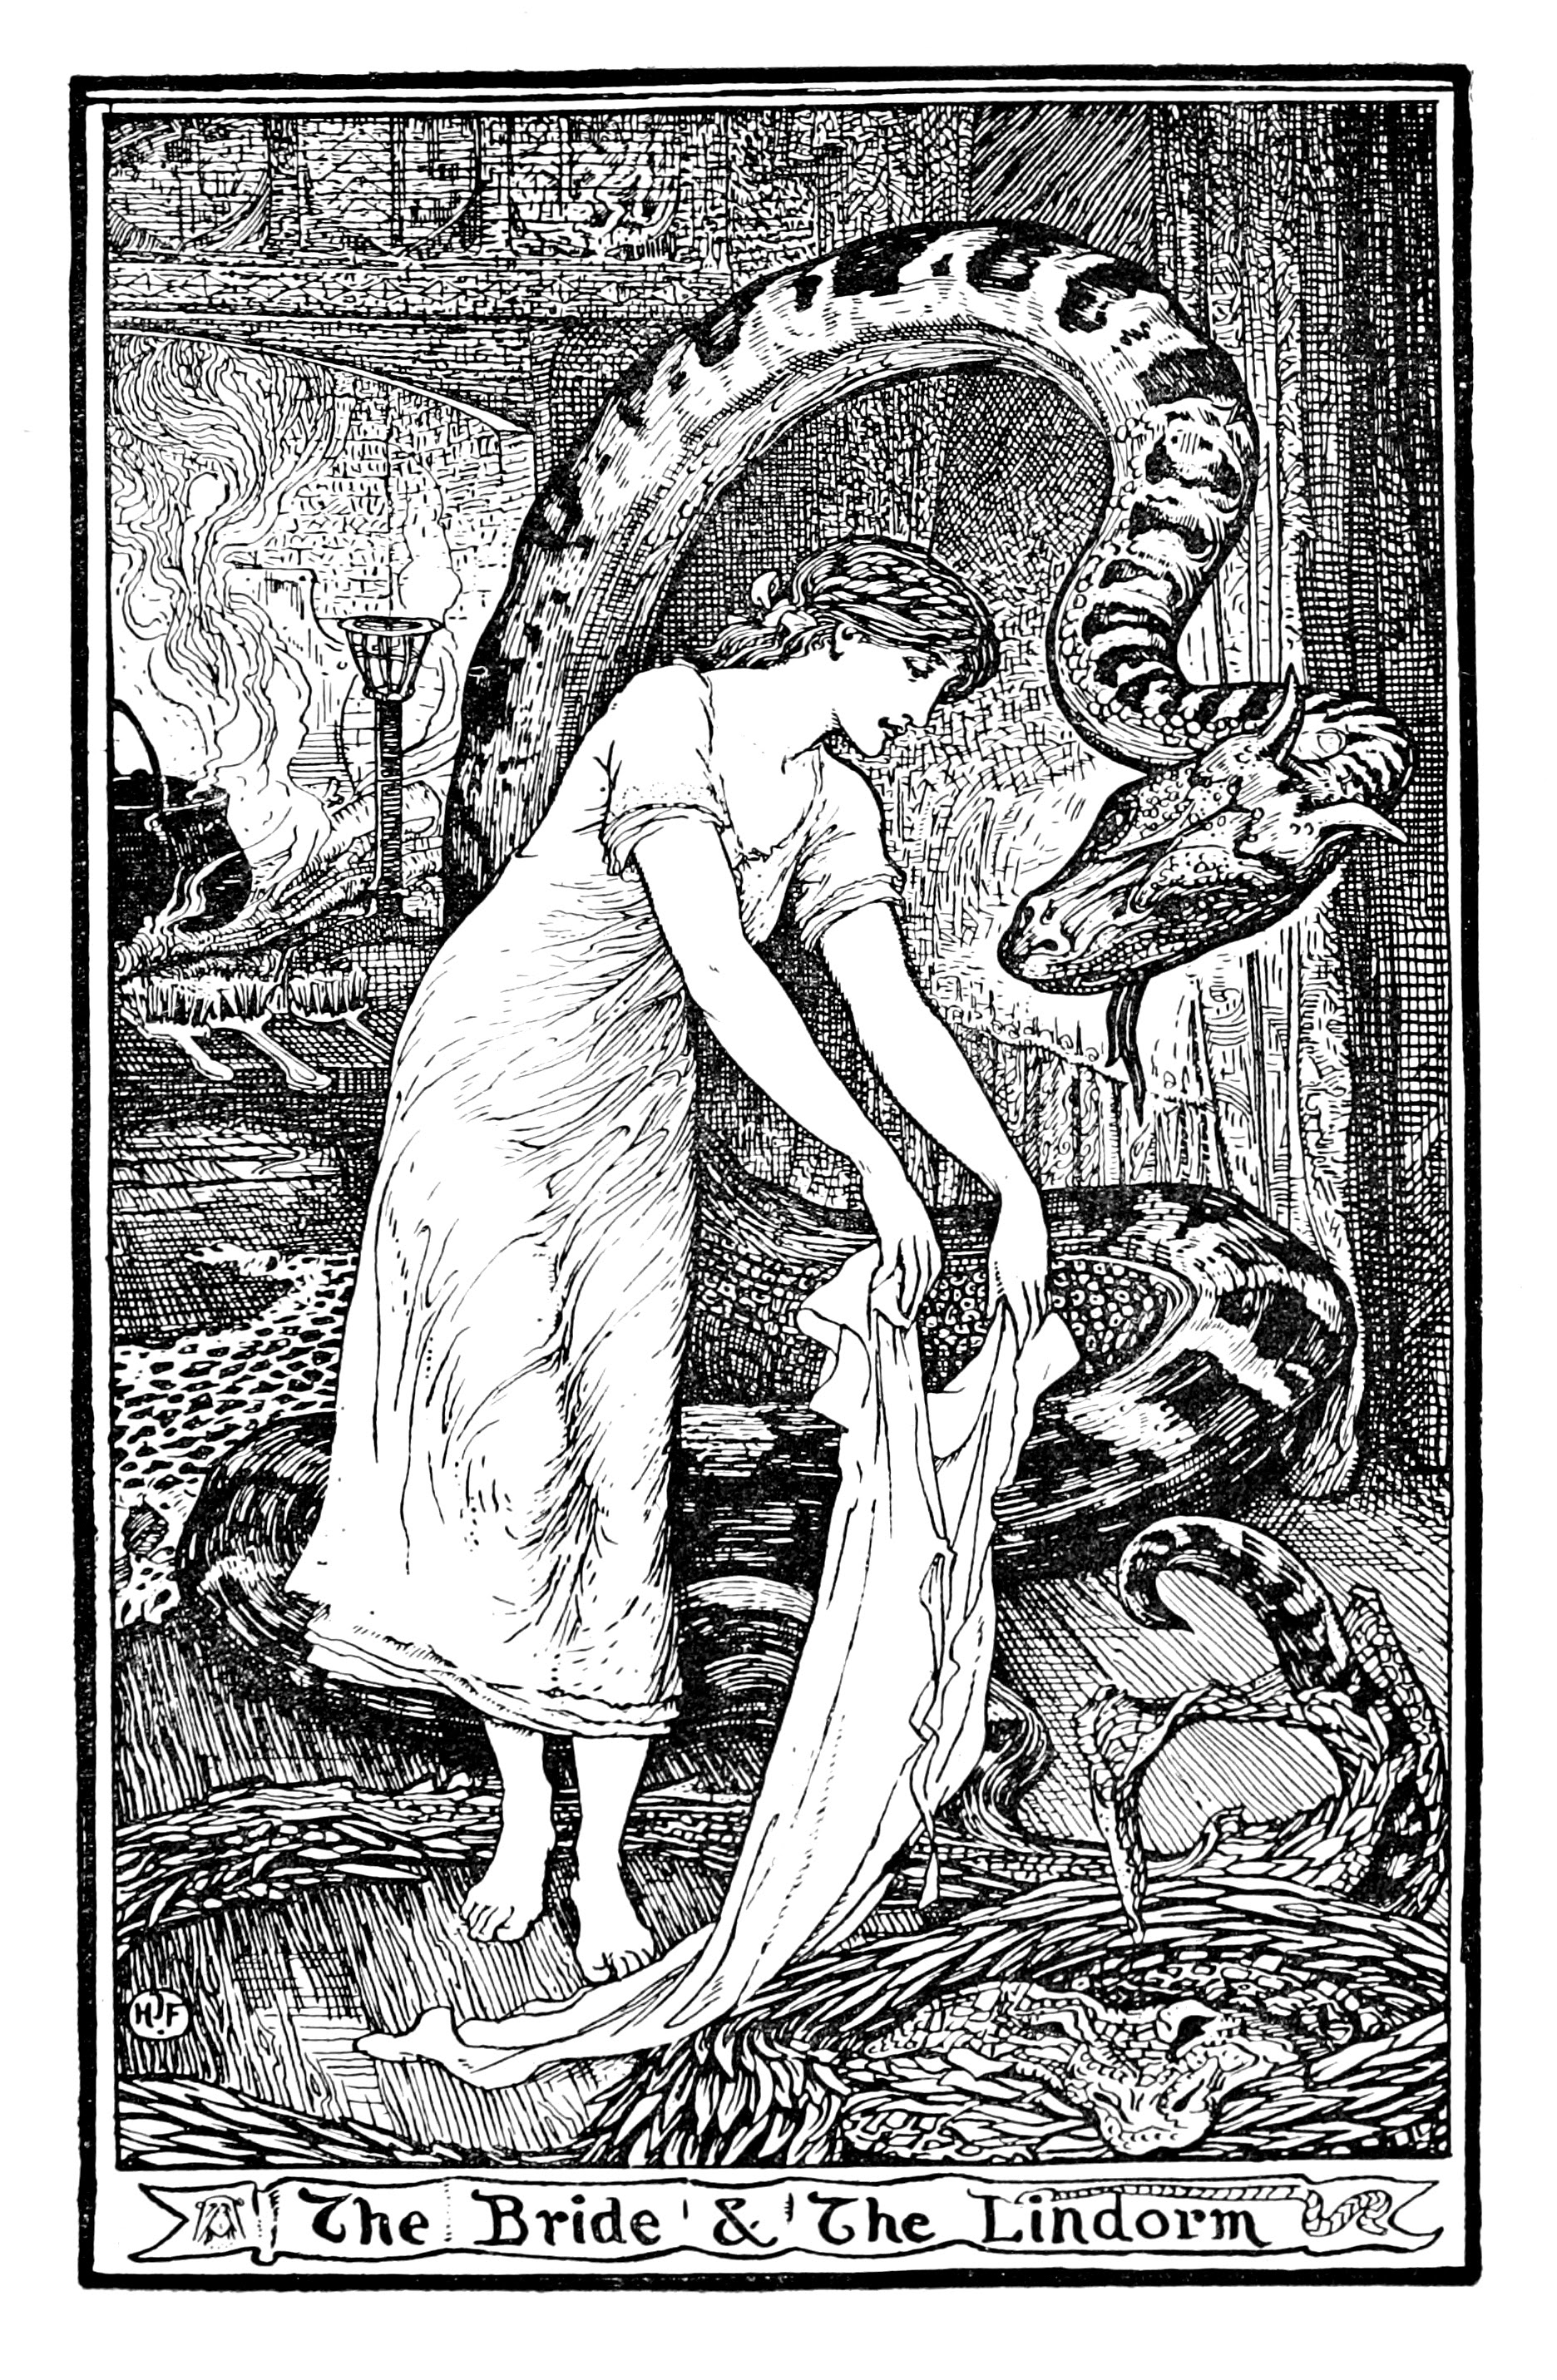 Henry Justice Ford - The pink fairy book, edited by Andrew Lang, 1897 (illustration 15)